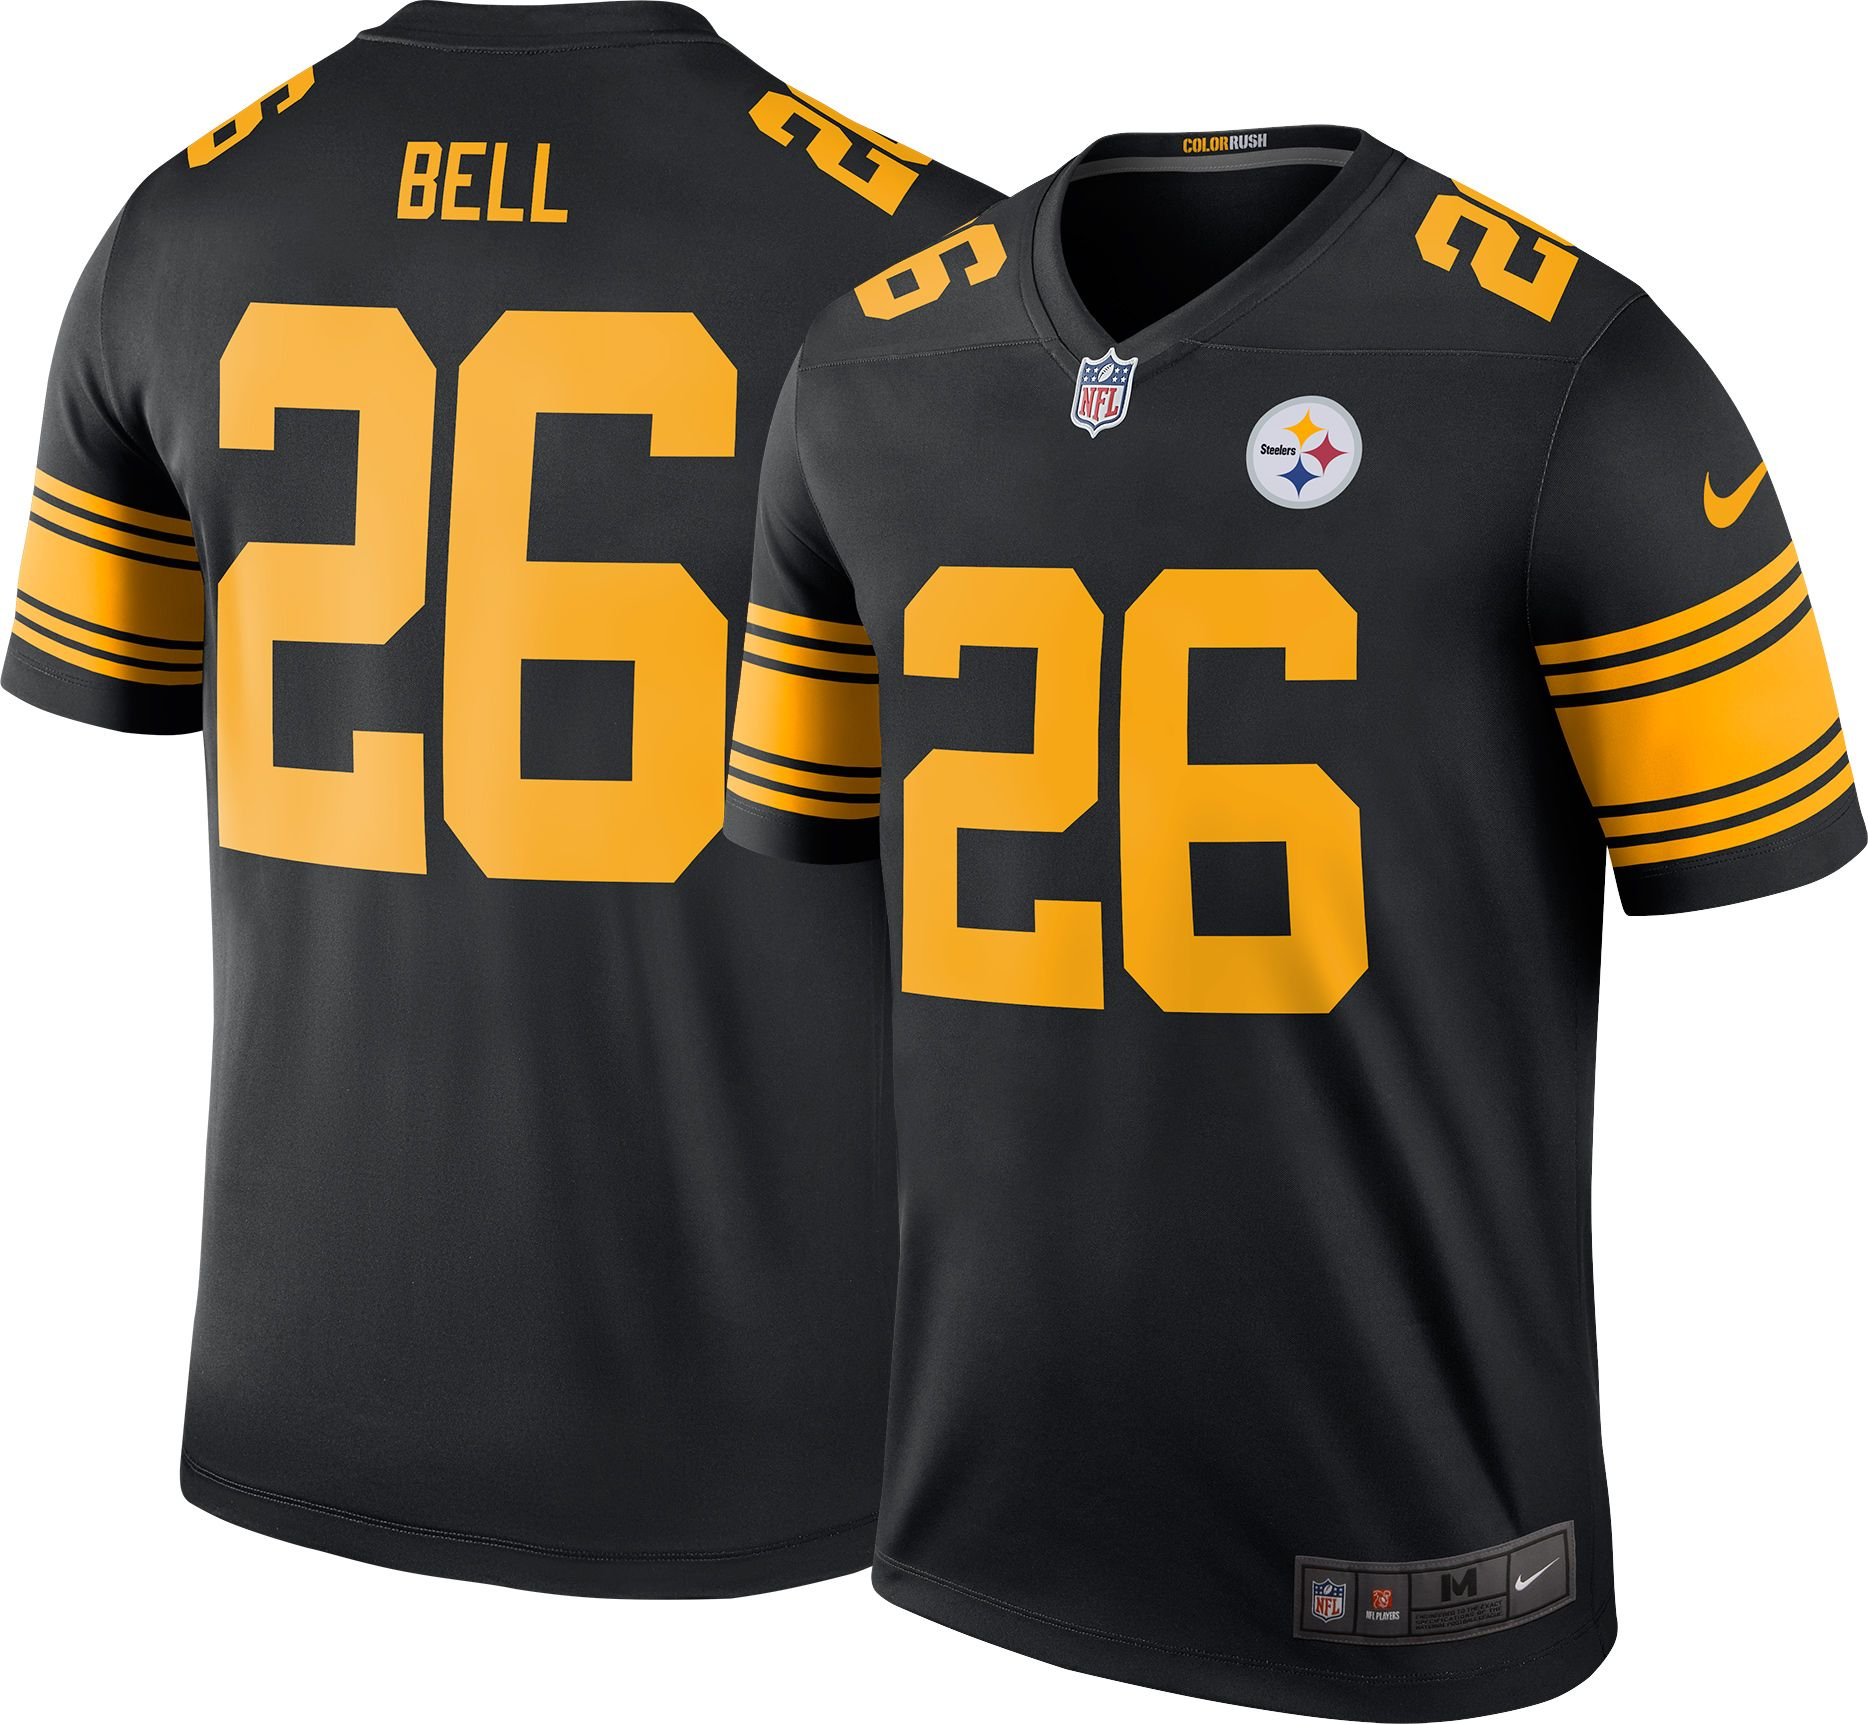 pittsburgh steelers jersey bell